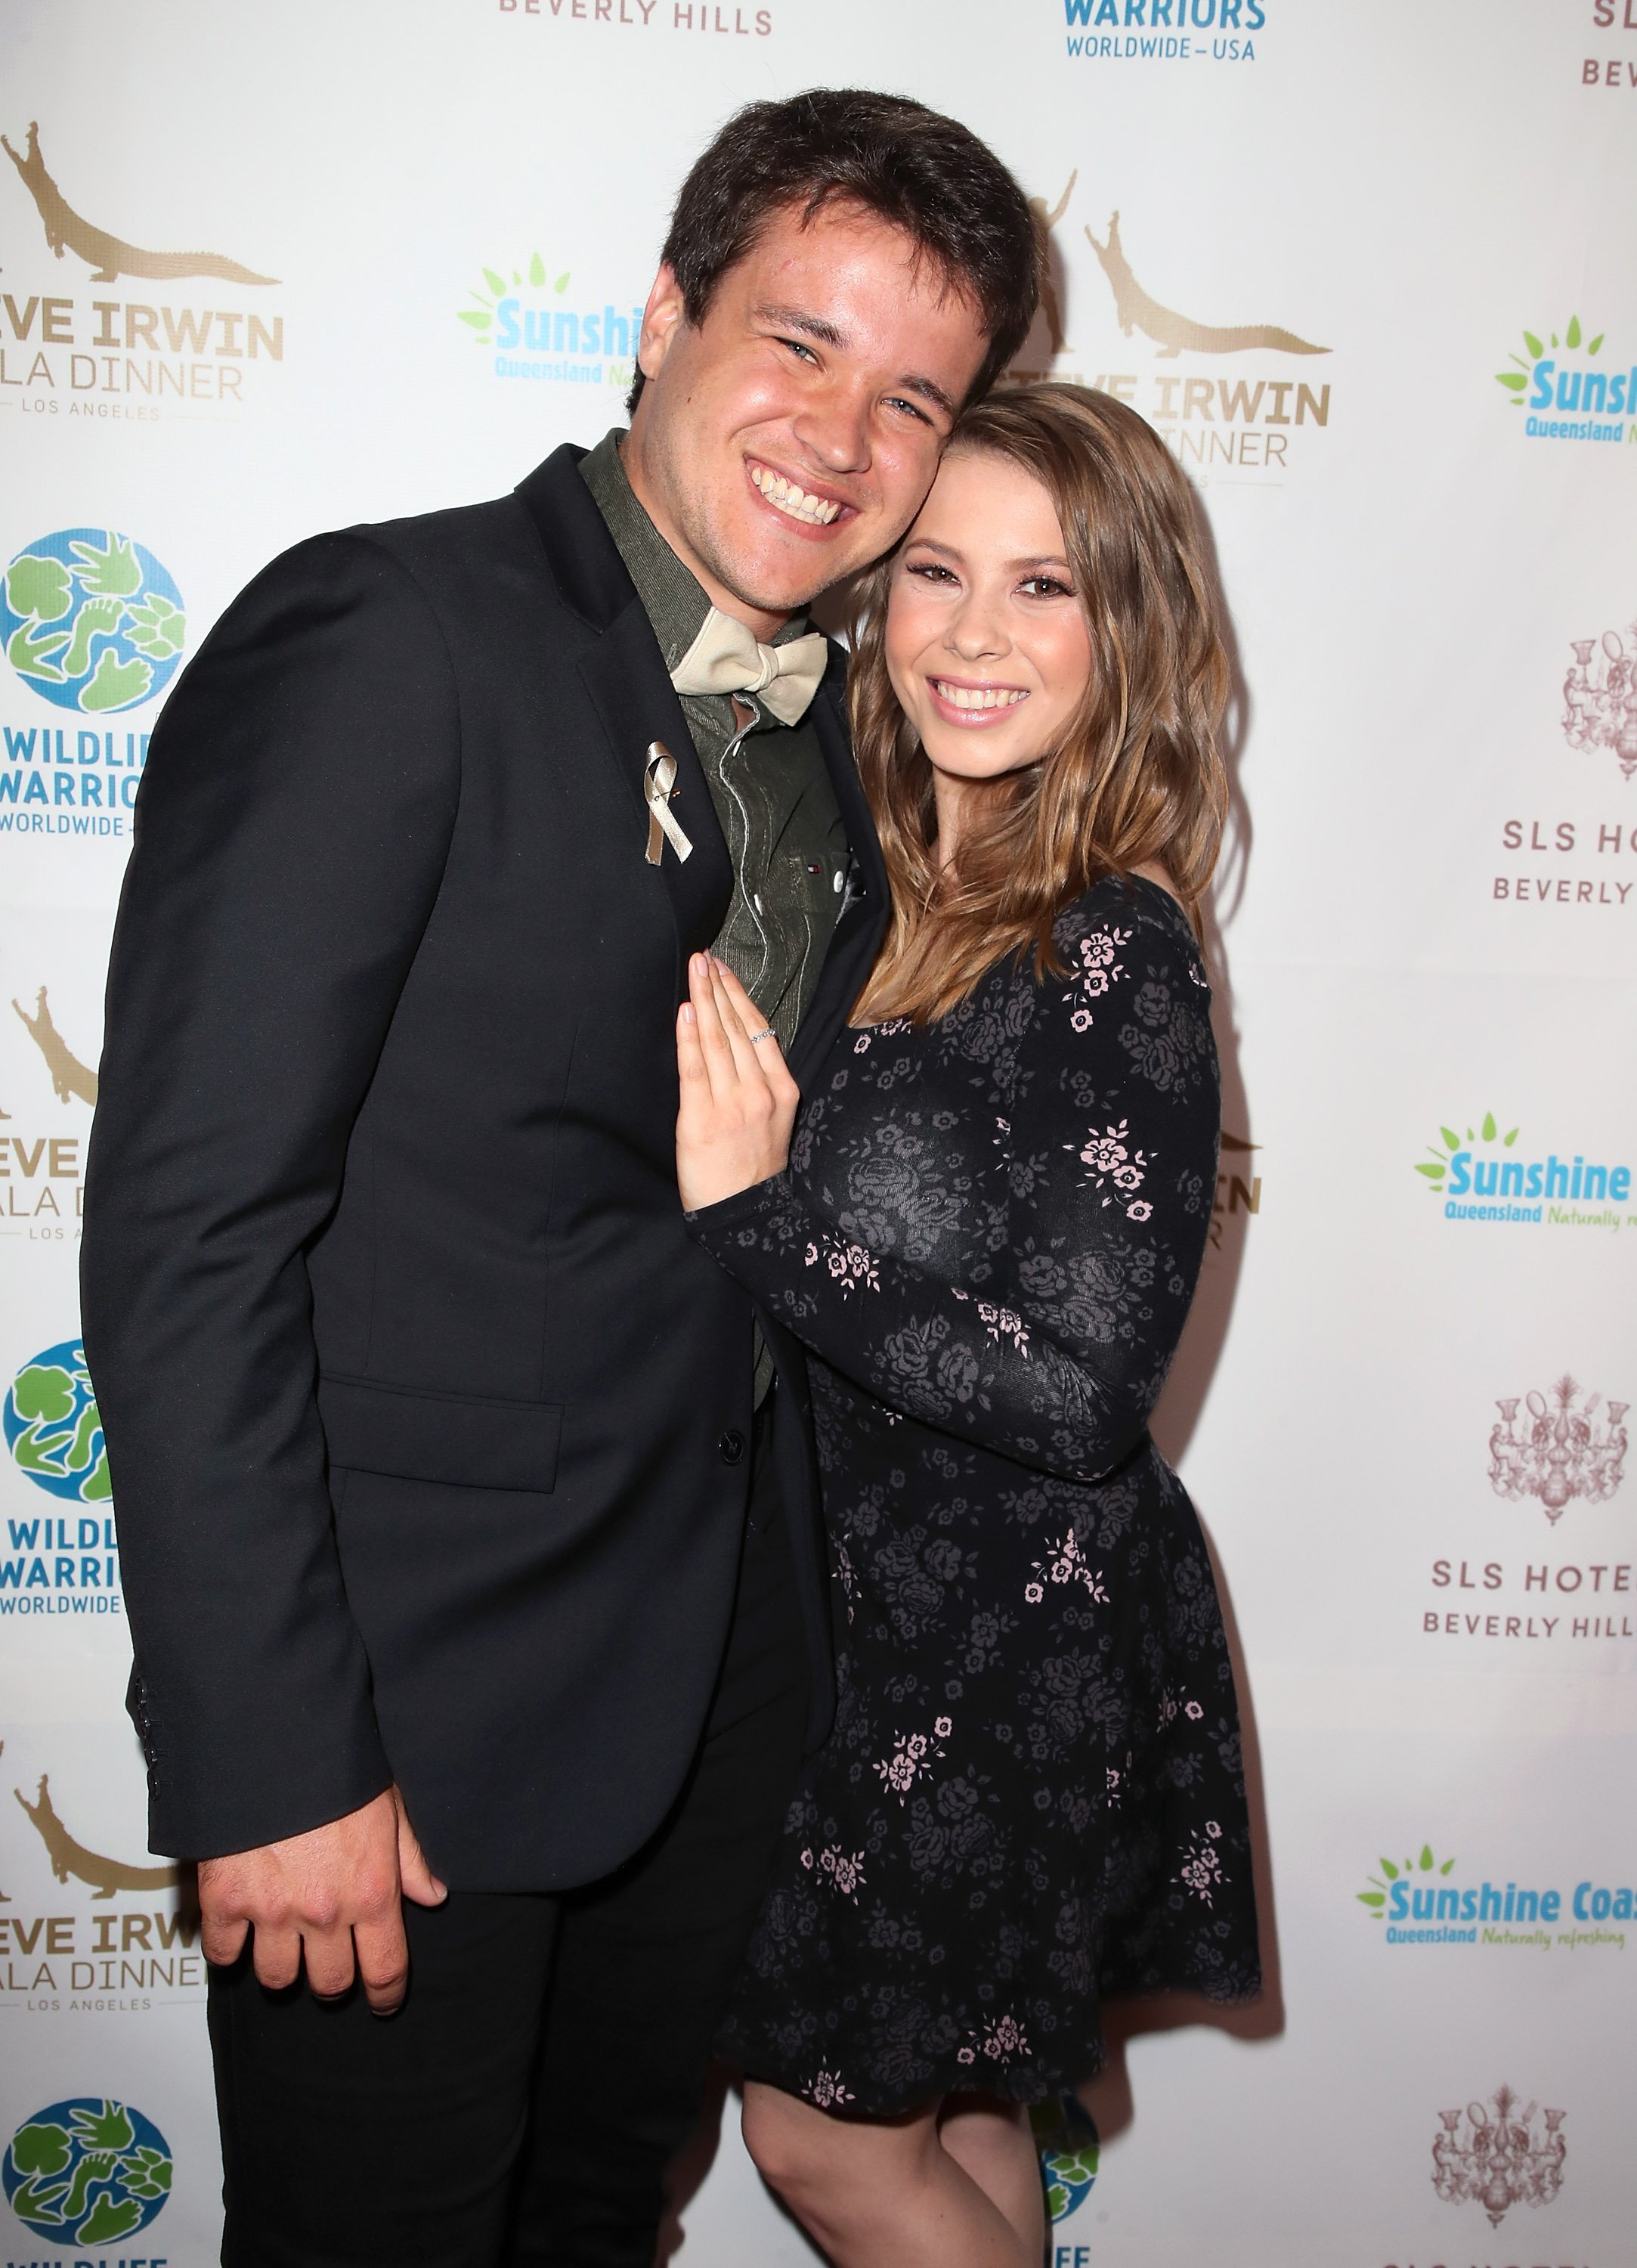 Chandler Powell and Bindi Irwin attend the Steve Irwin Gala Dinner on May 5, 2018. | Photo: GettyImages